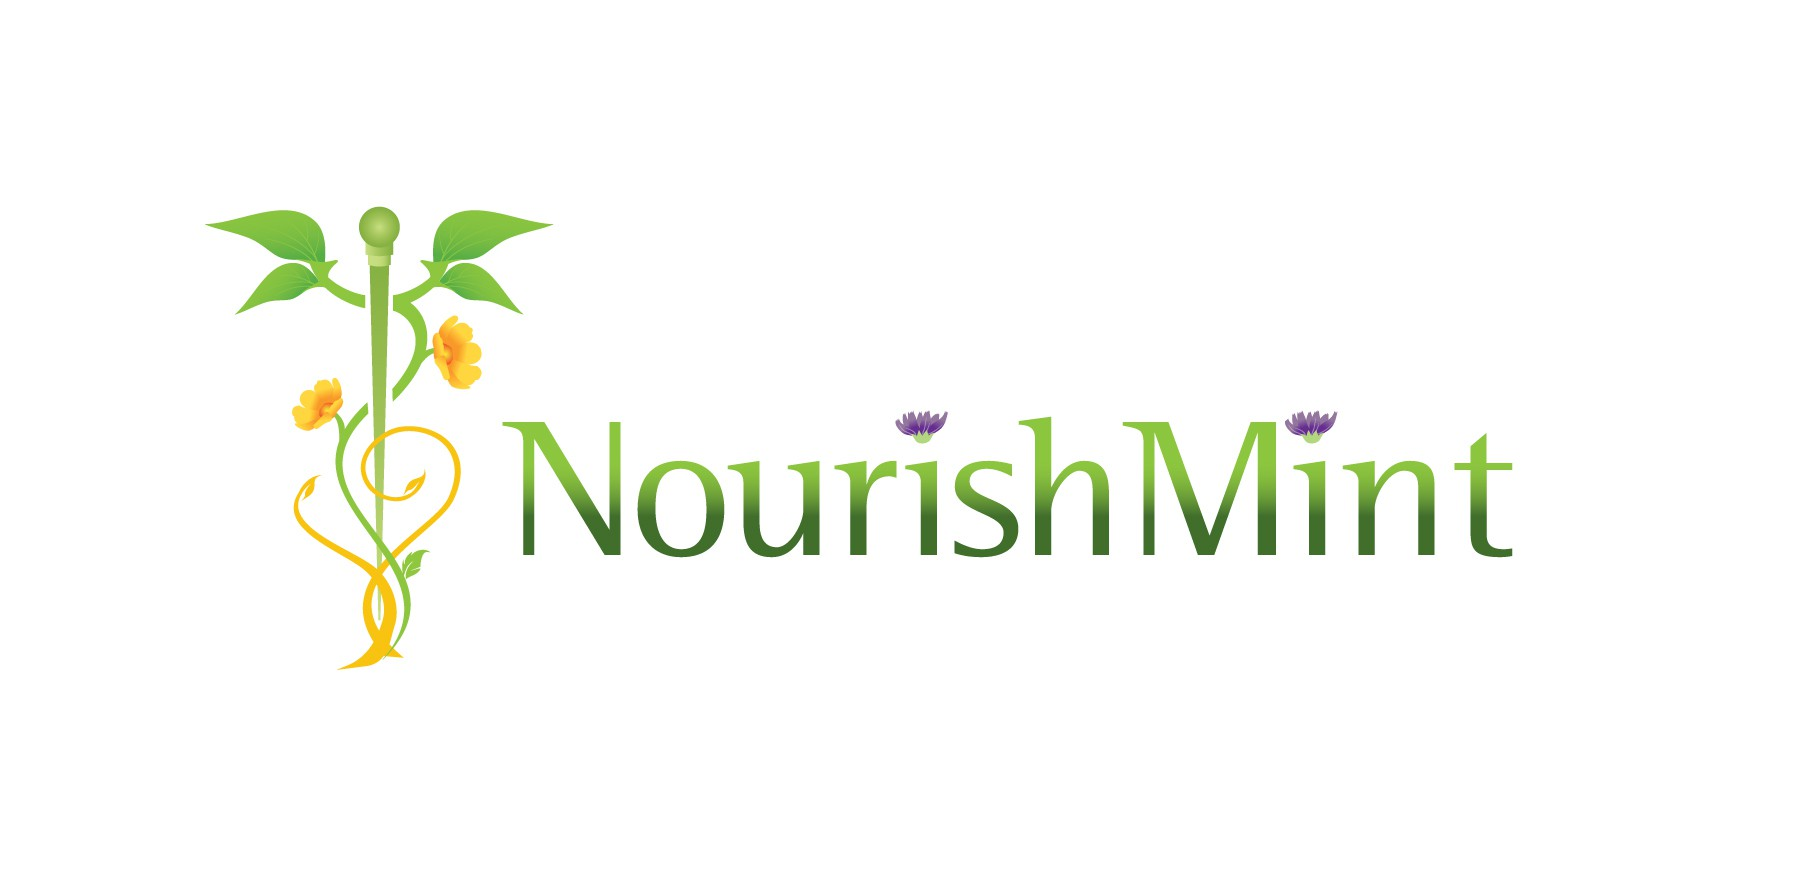 New logo wanted for NourishMint